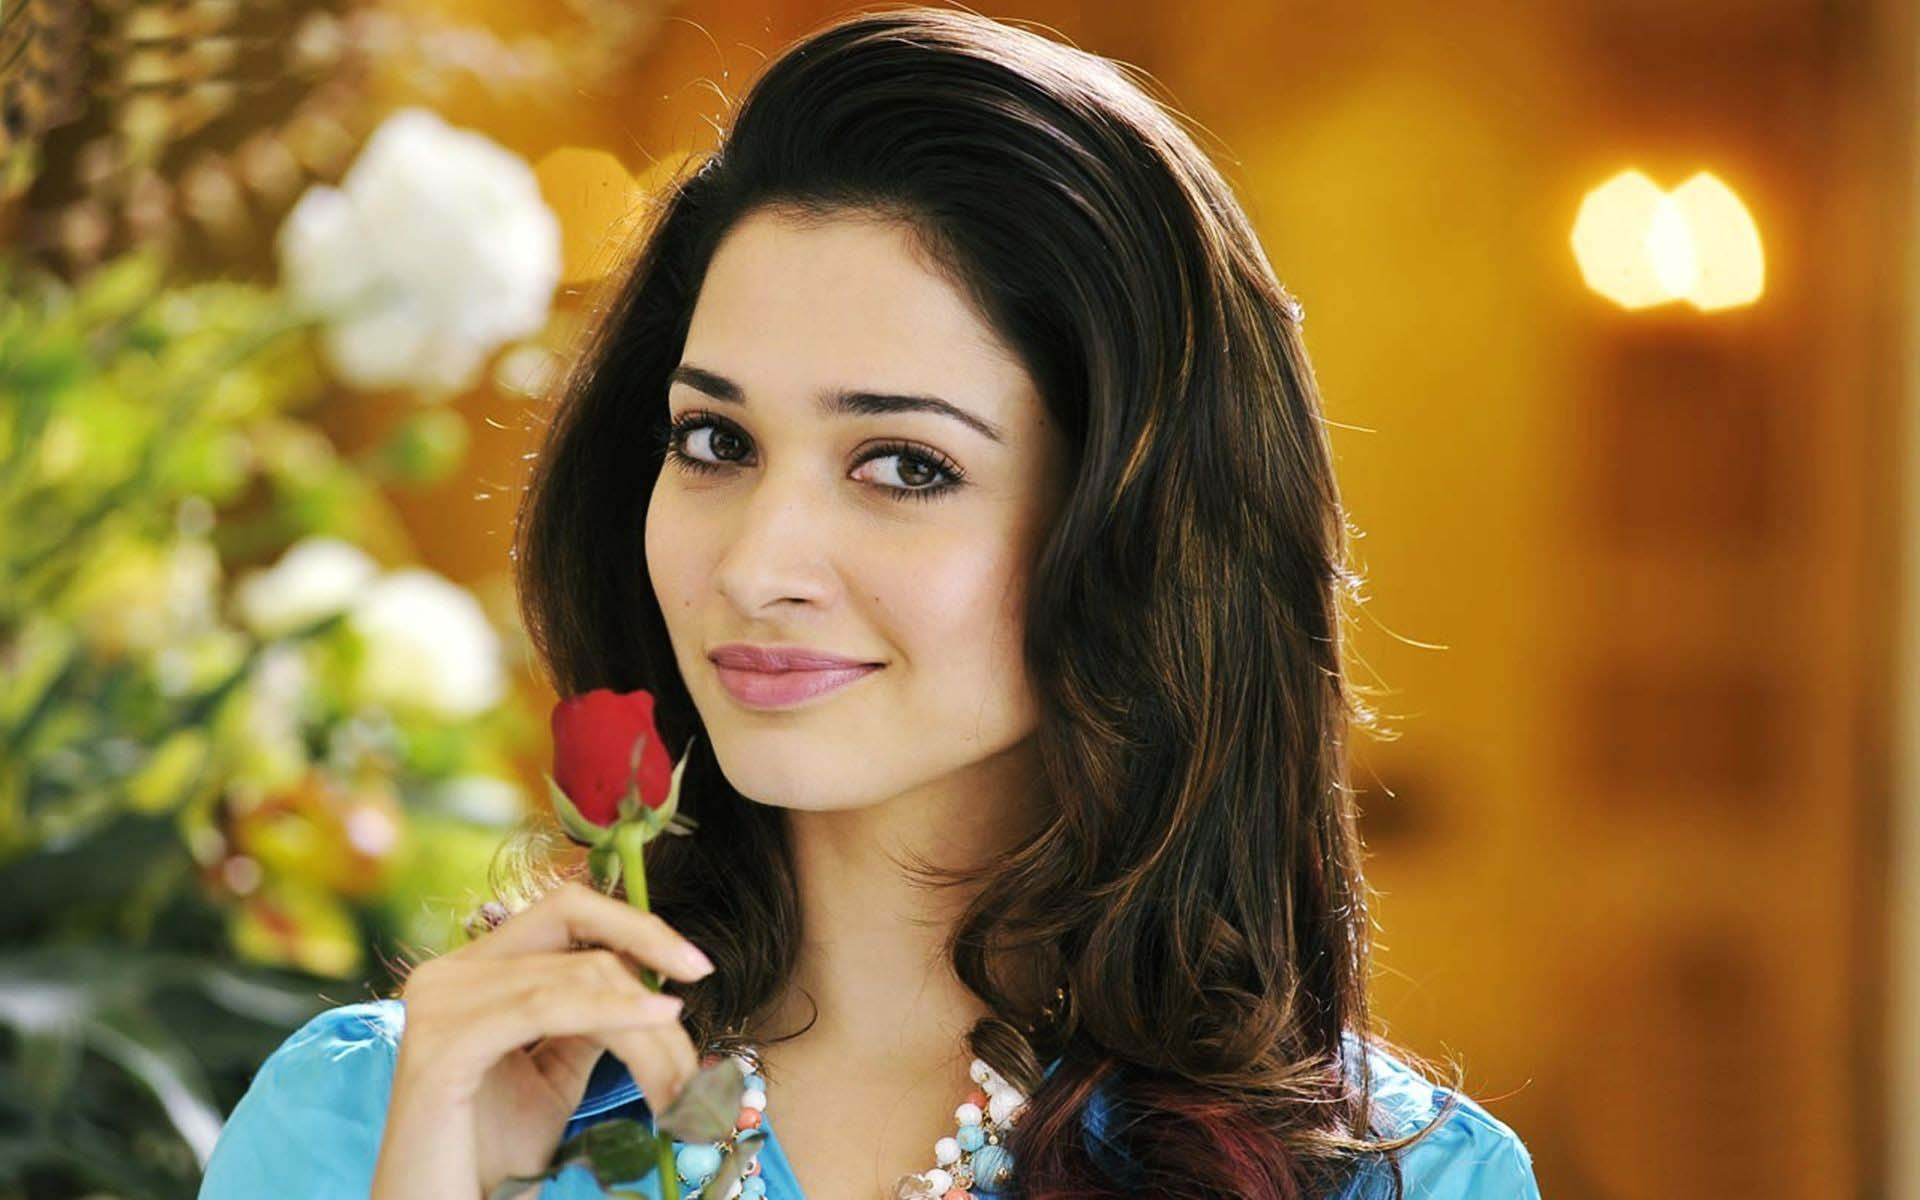 Bollywood Actress Wallpapers Hd Free Download 49 Find: Tamanna Wallpapers High Resolution And Quality Download